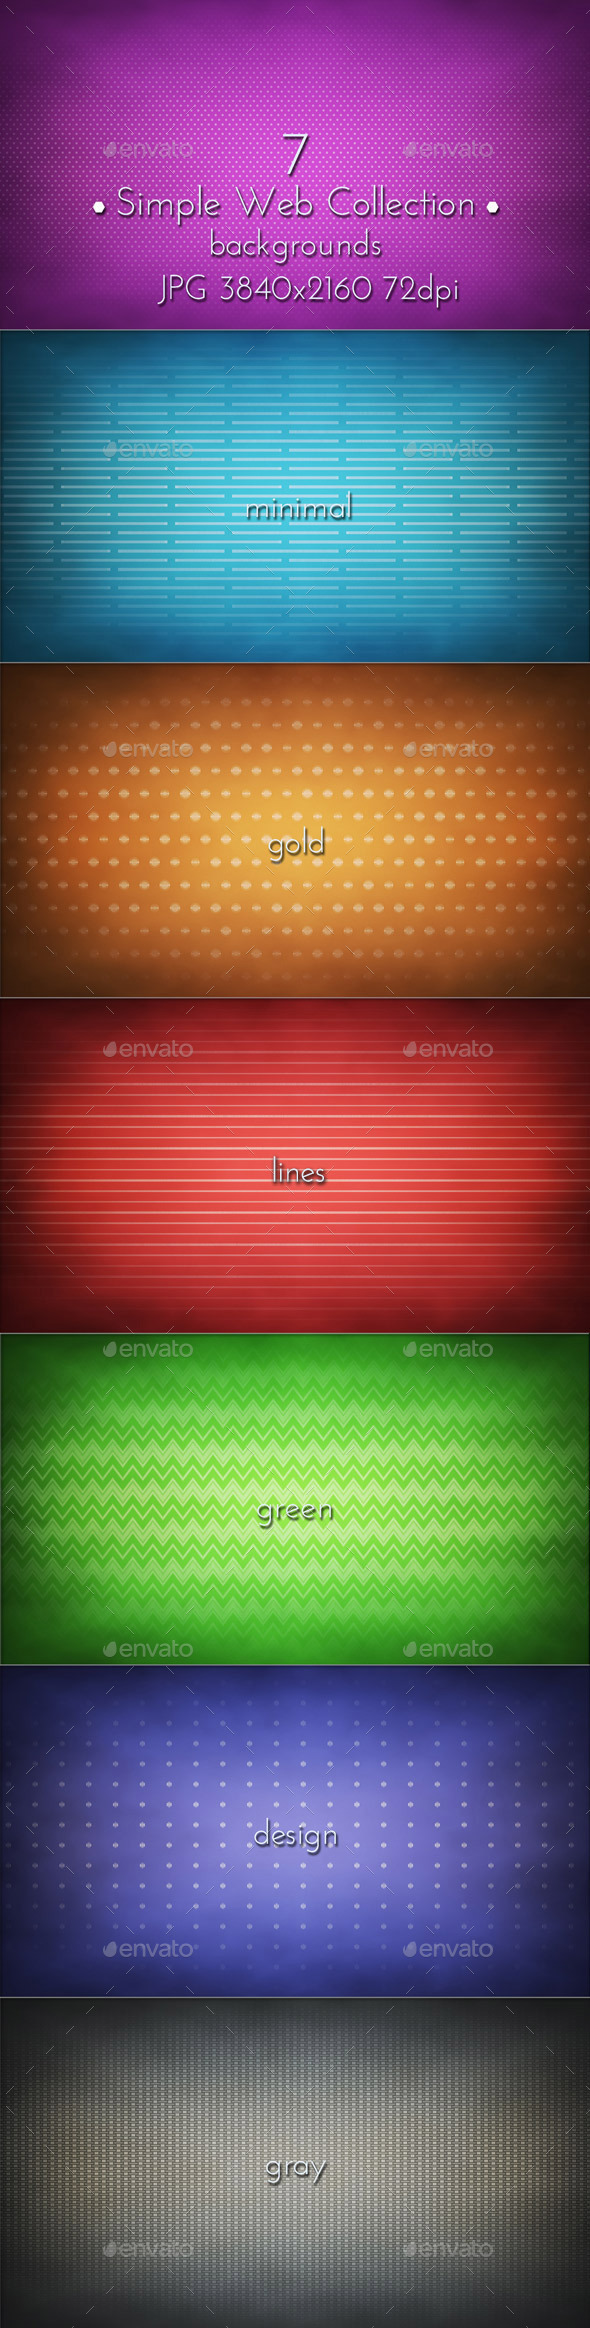 Simple Web Backgrounds